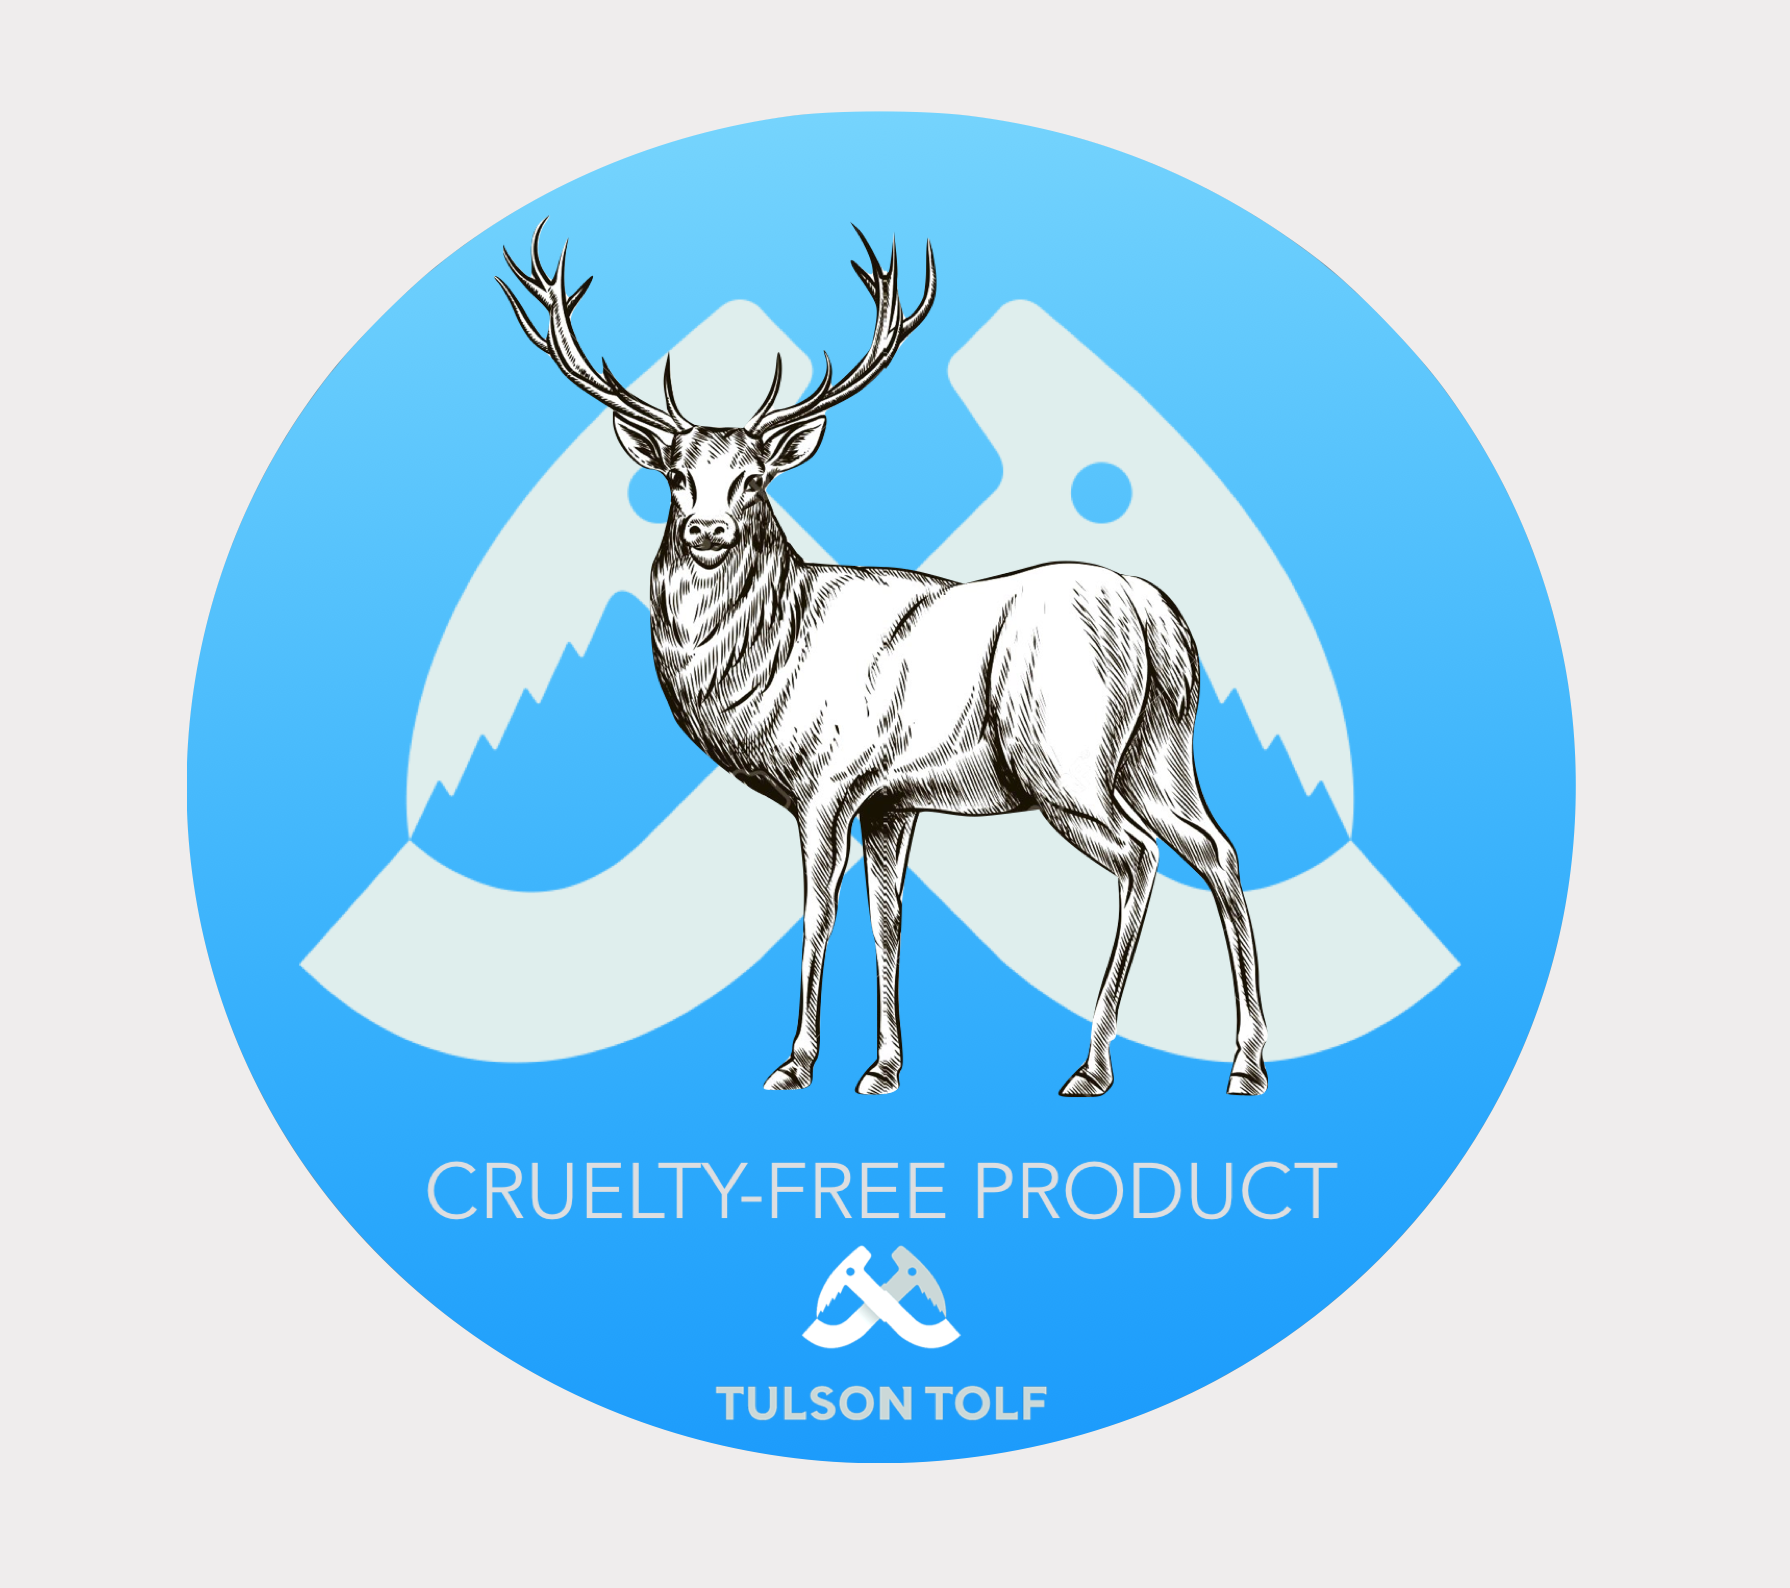 CRUELTY FREE PRODUCT